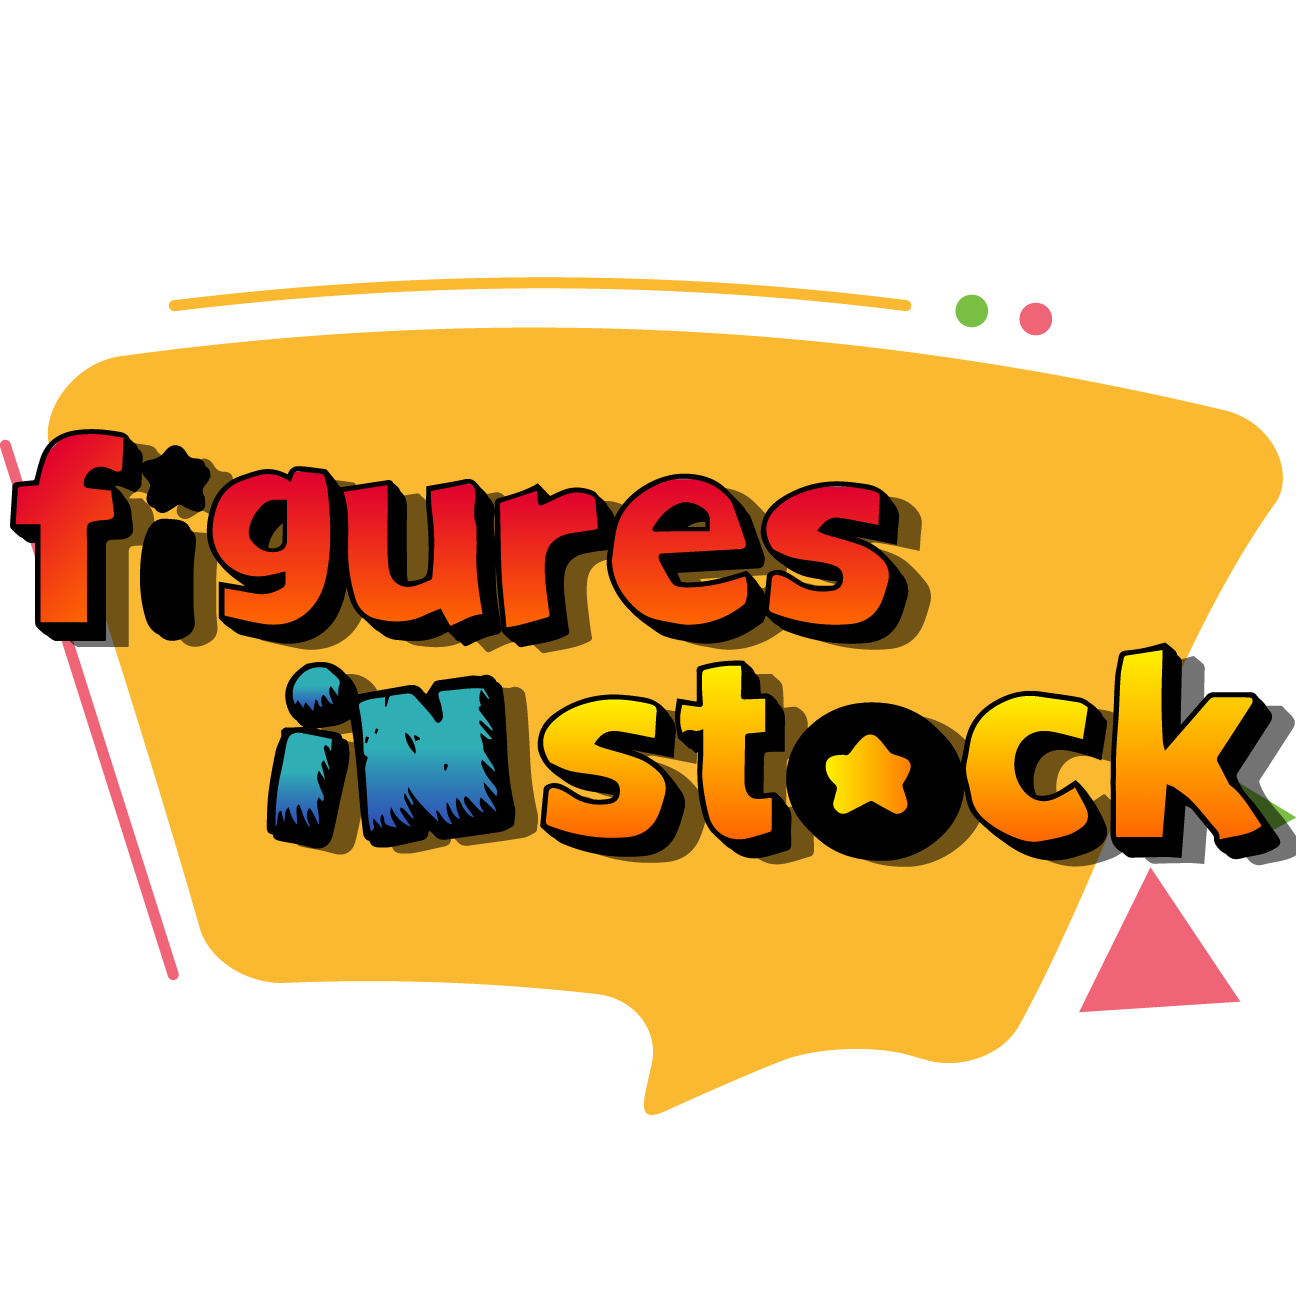 Figures in Stock